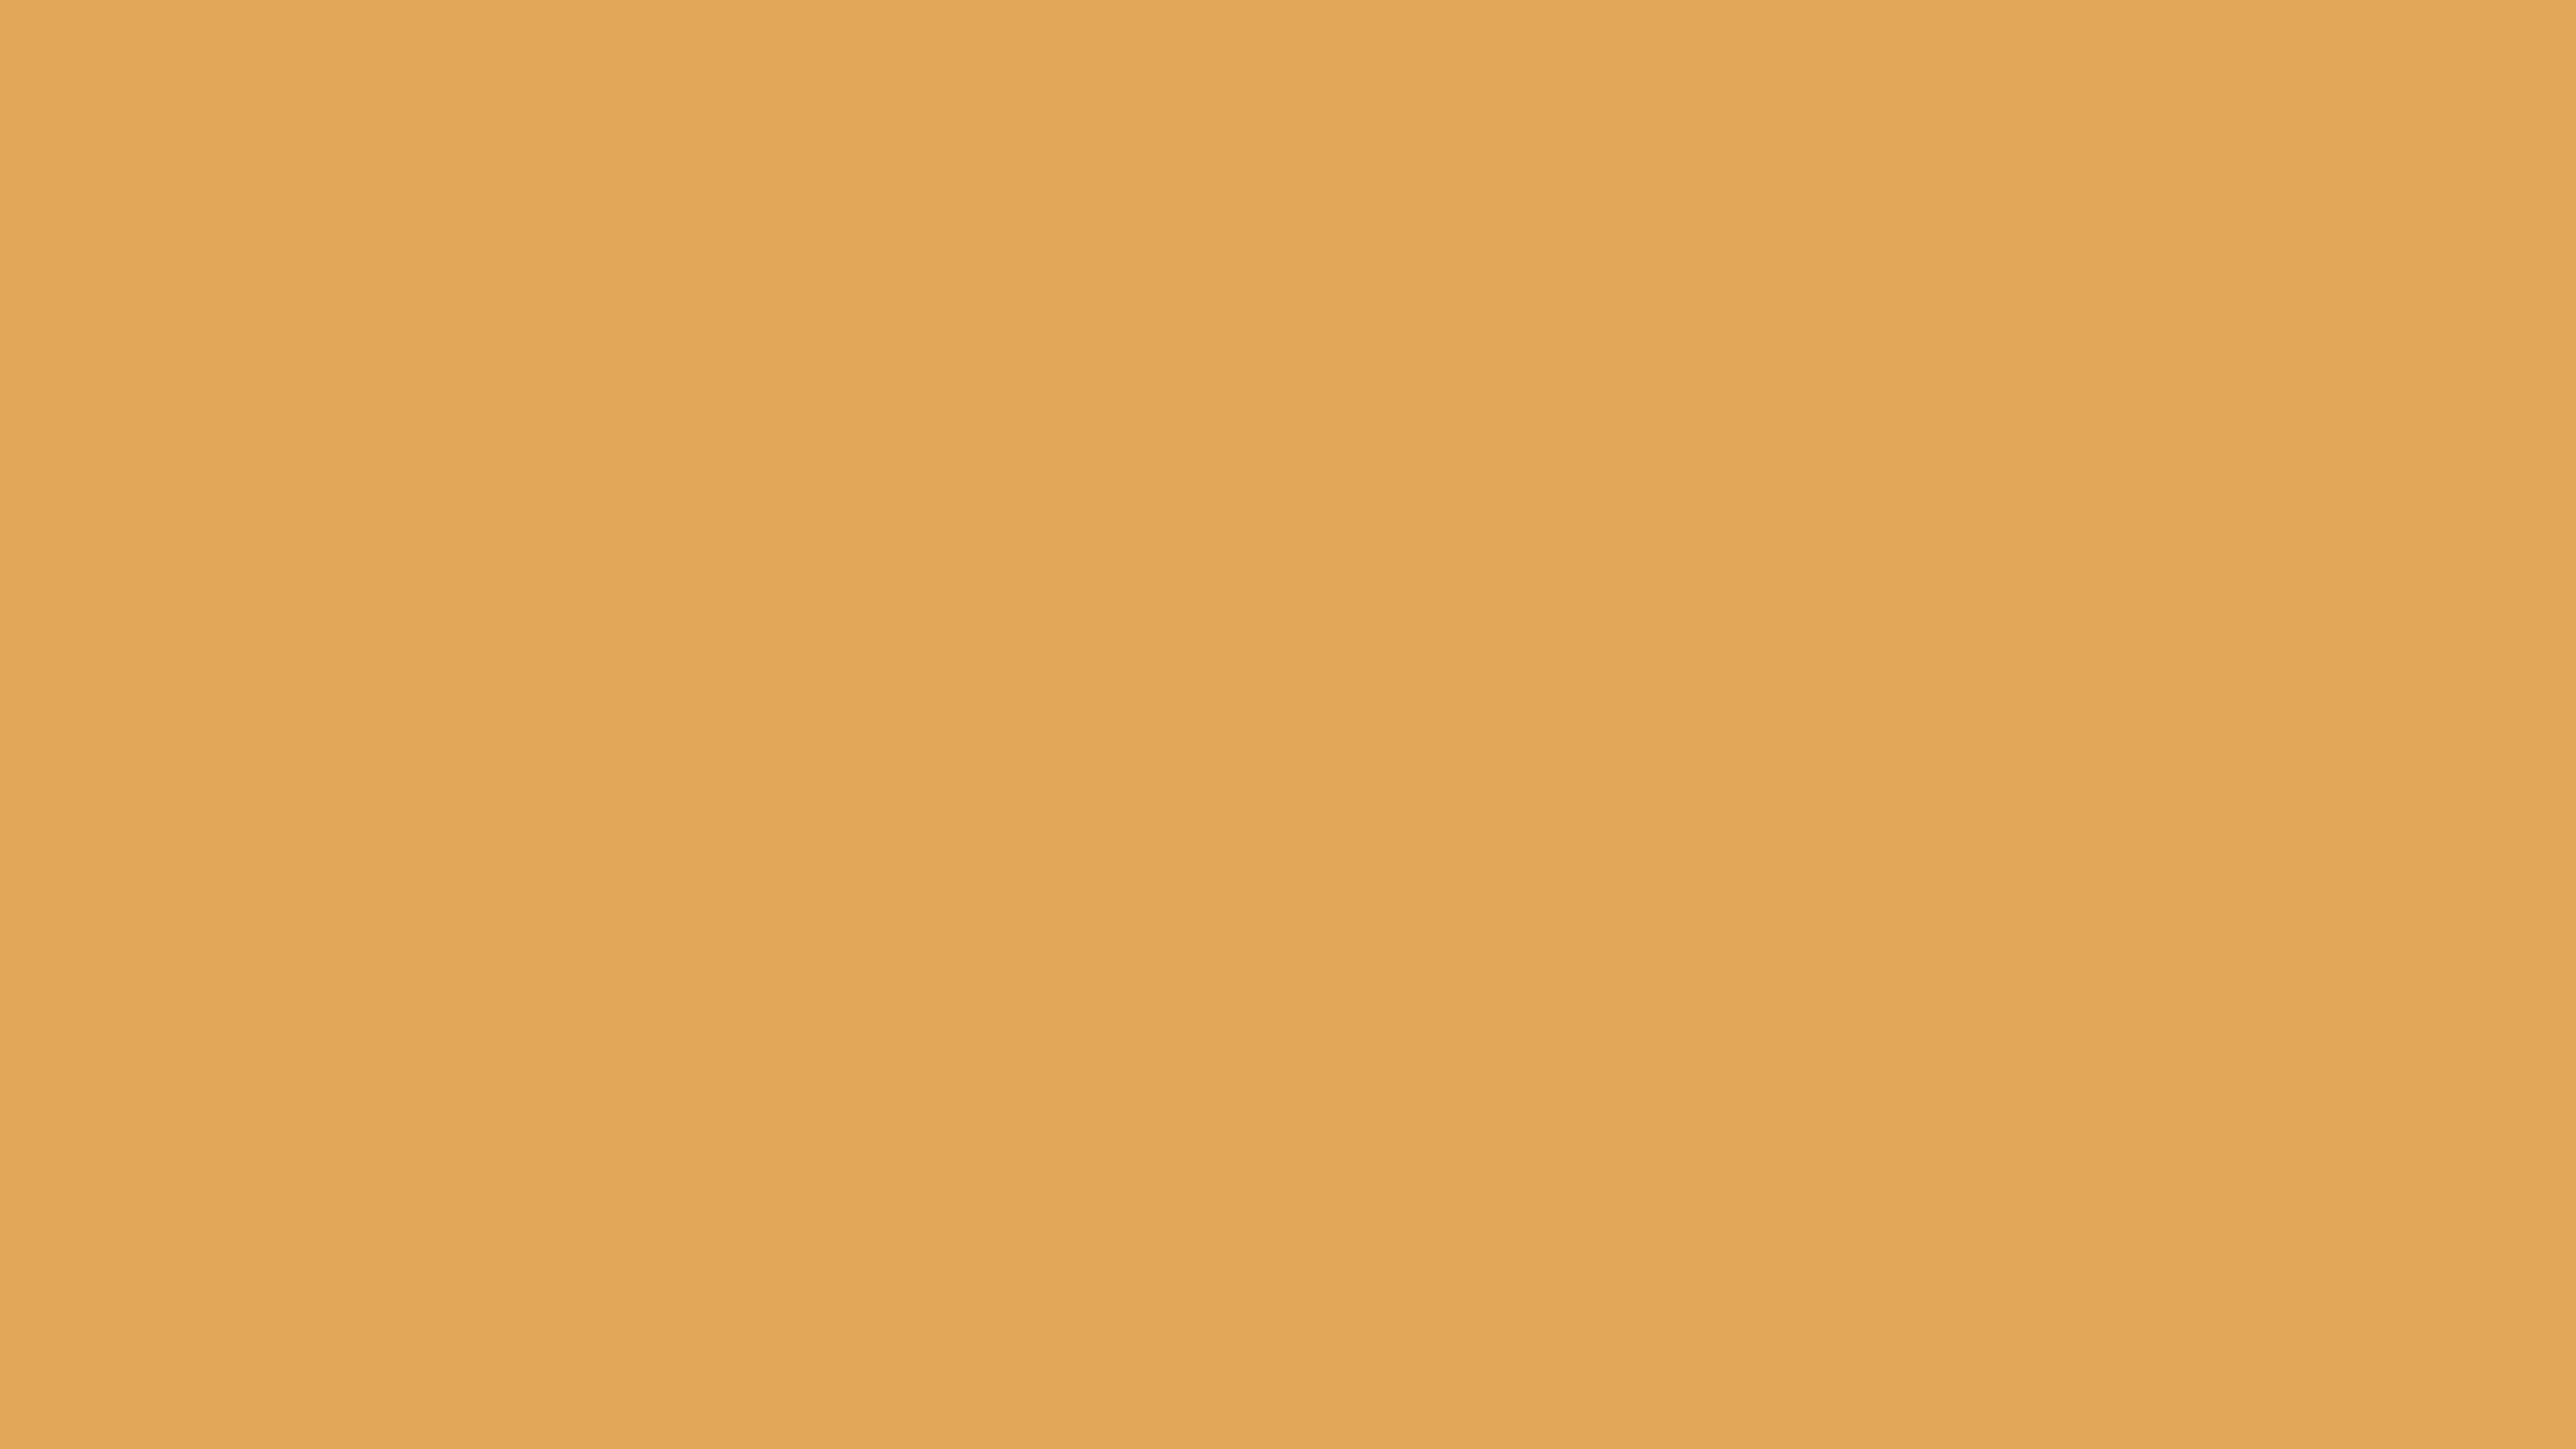 3840x2160 Indian Yellow Solid Color Background